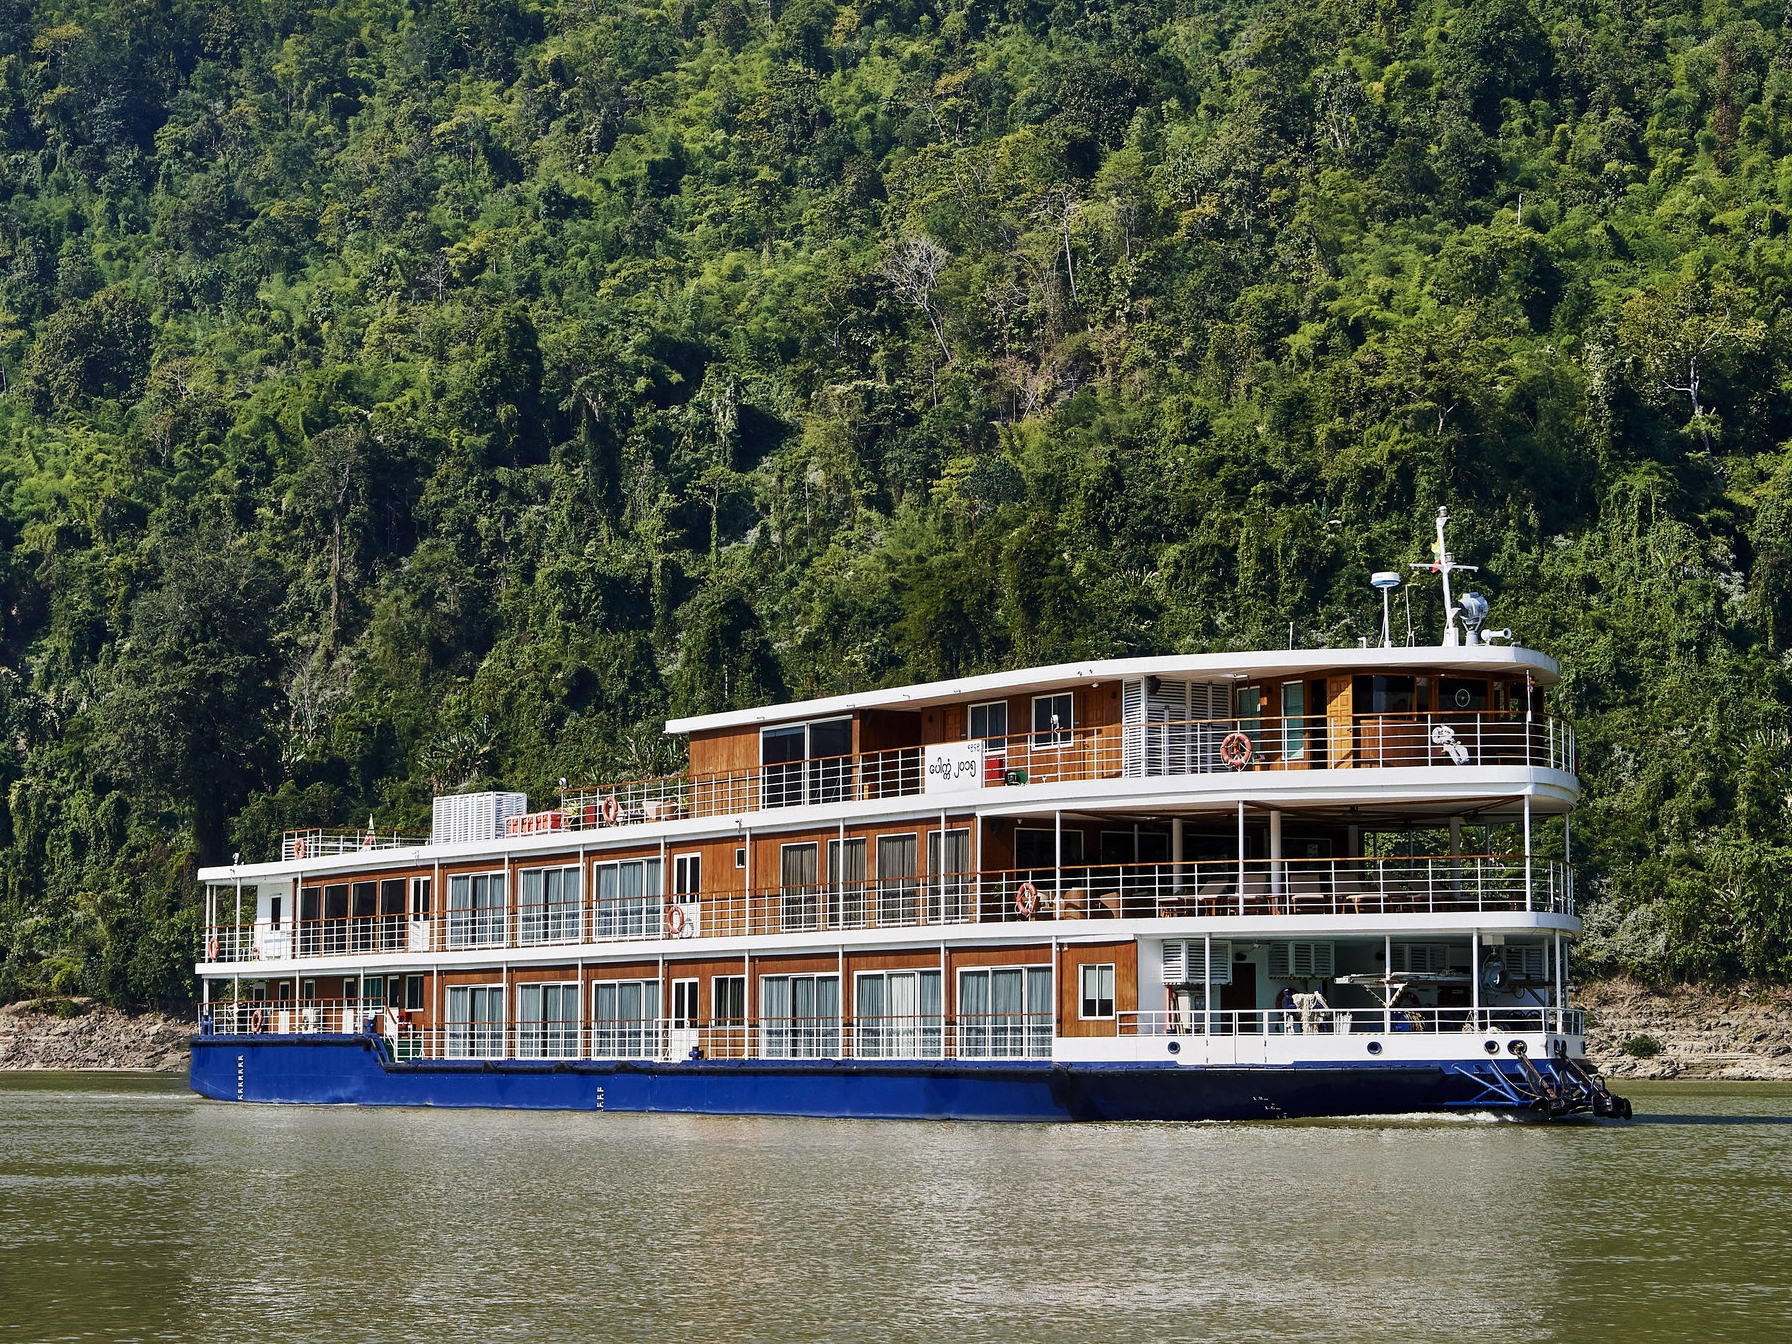 RV Paukan 2015 - This elegant ship has 18 staterooms, each with a private bathroom and French balcony. It was built by the Ayravata Cruise Company at Yangon and features state-of-the-art facilities and safety equipment. Sumptuously and elegantly furnished, it sets the standard for luxury on the Irrawaddy. Relax in the lounge or lie on the sun deck as the beauties of Myanmar pass by.